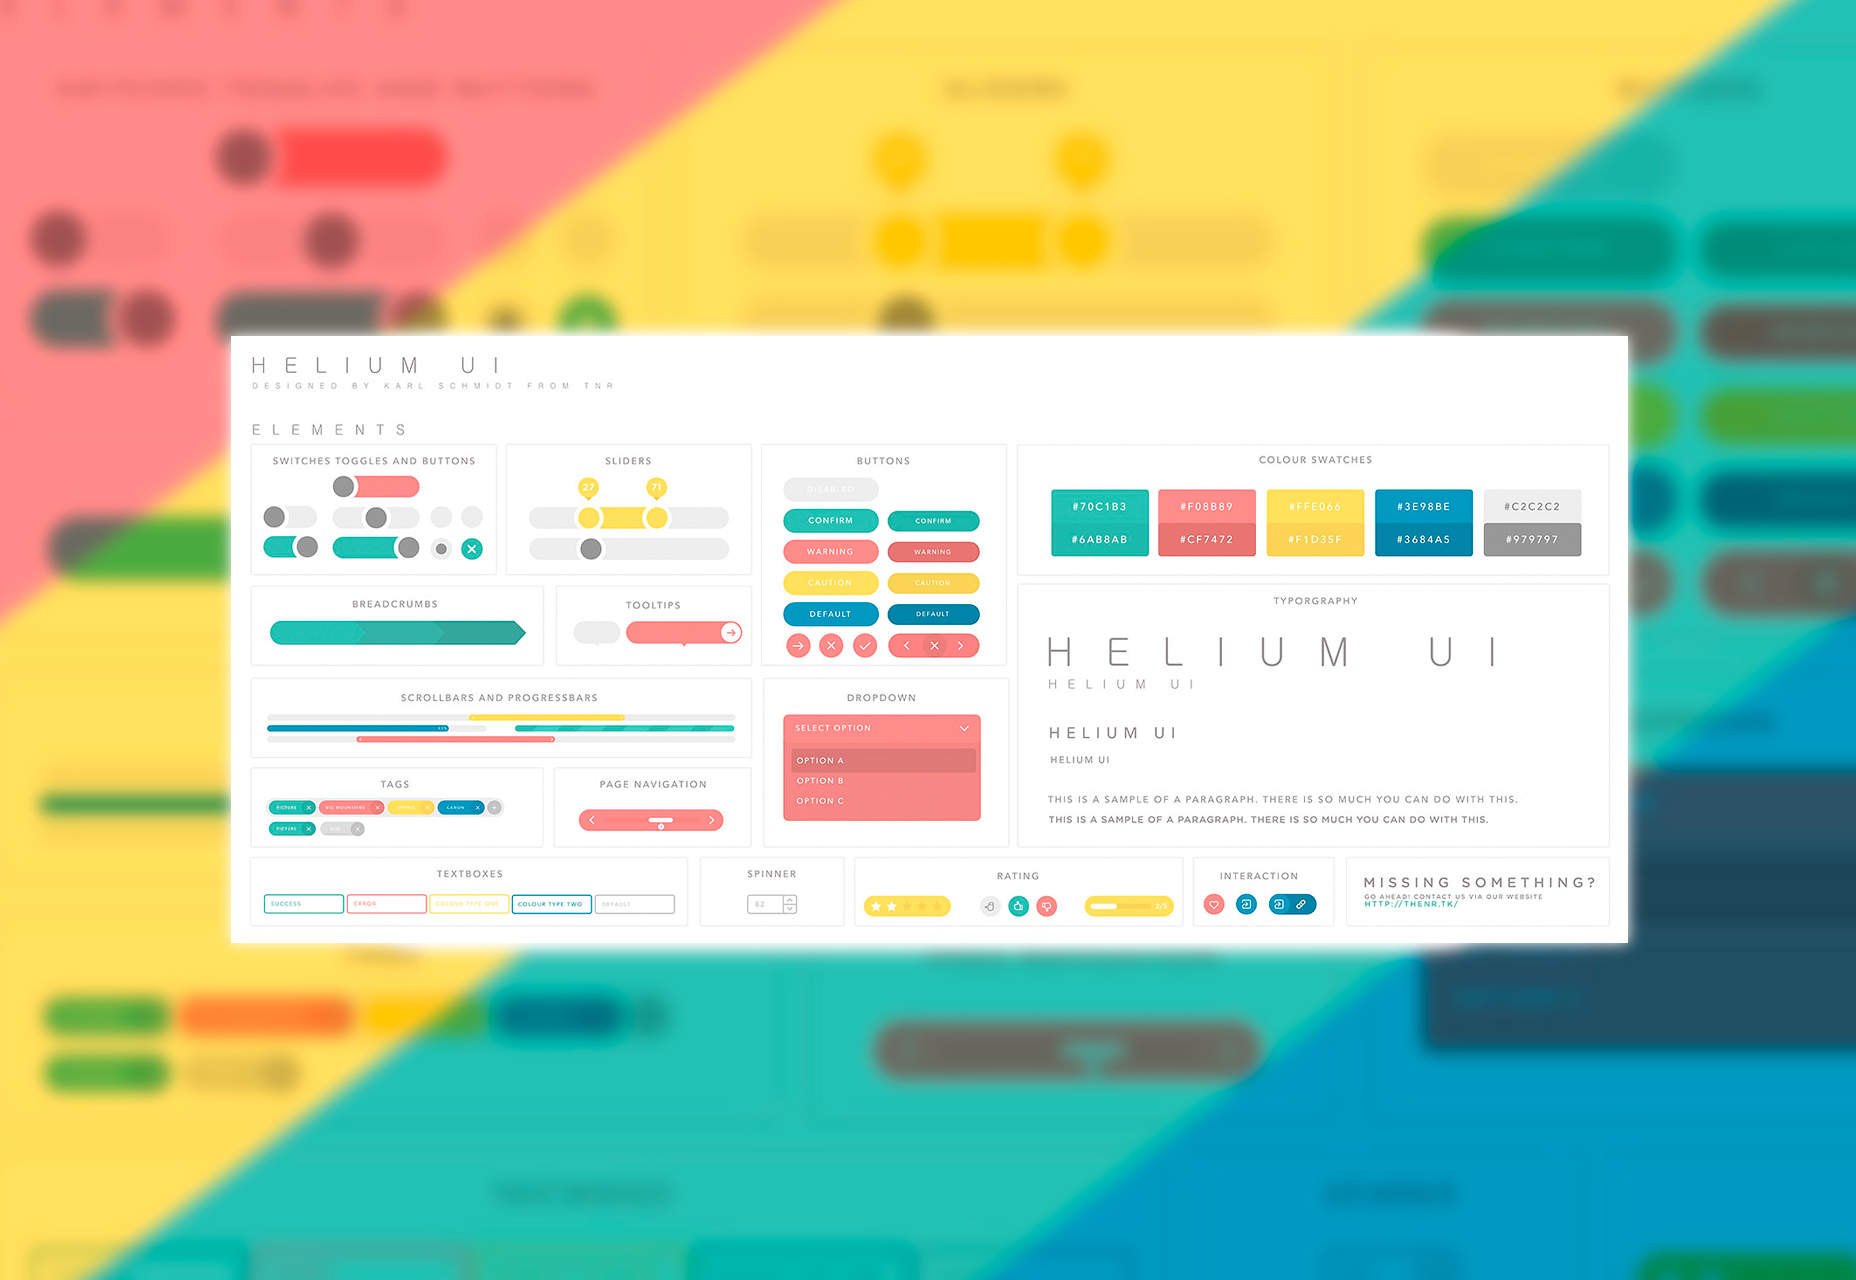 helium-ui-colorful-sketch-ui-kit